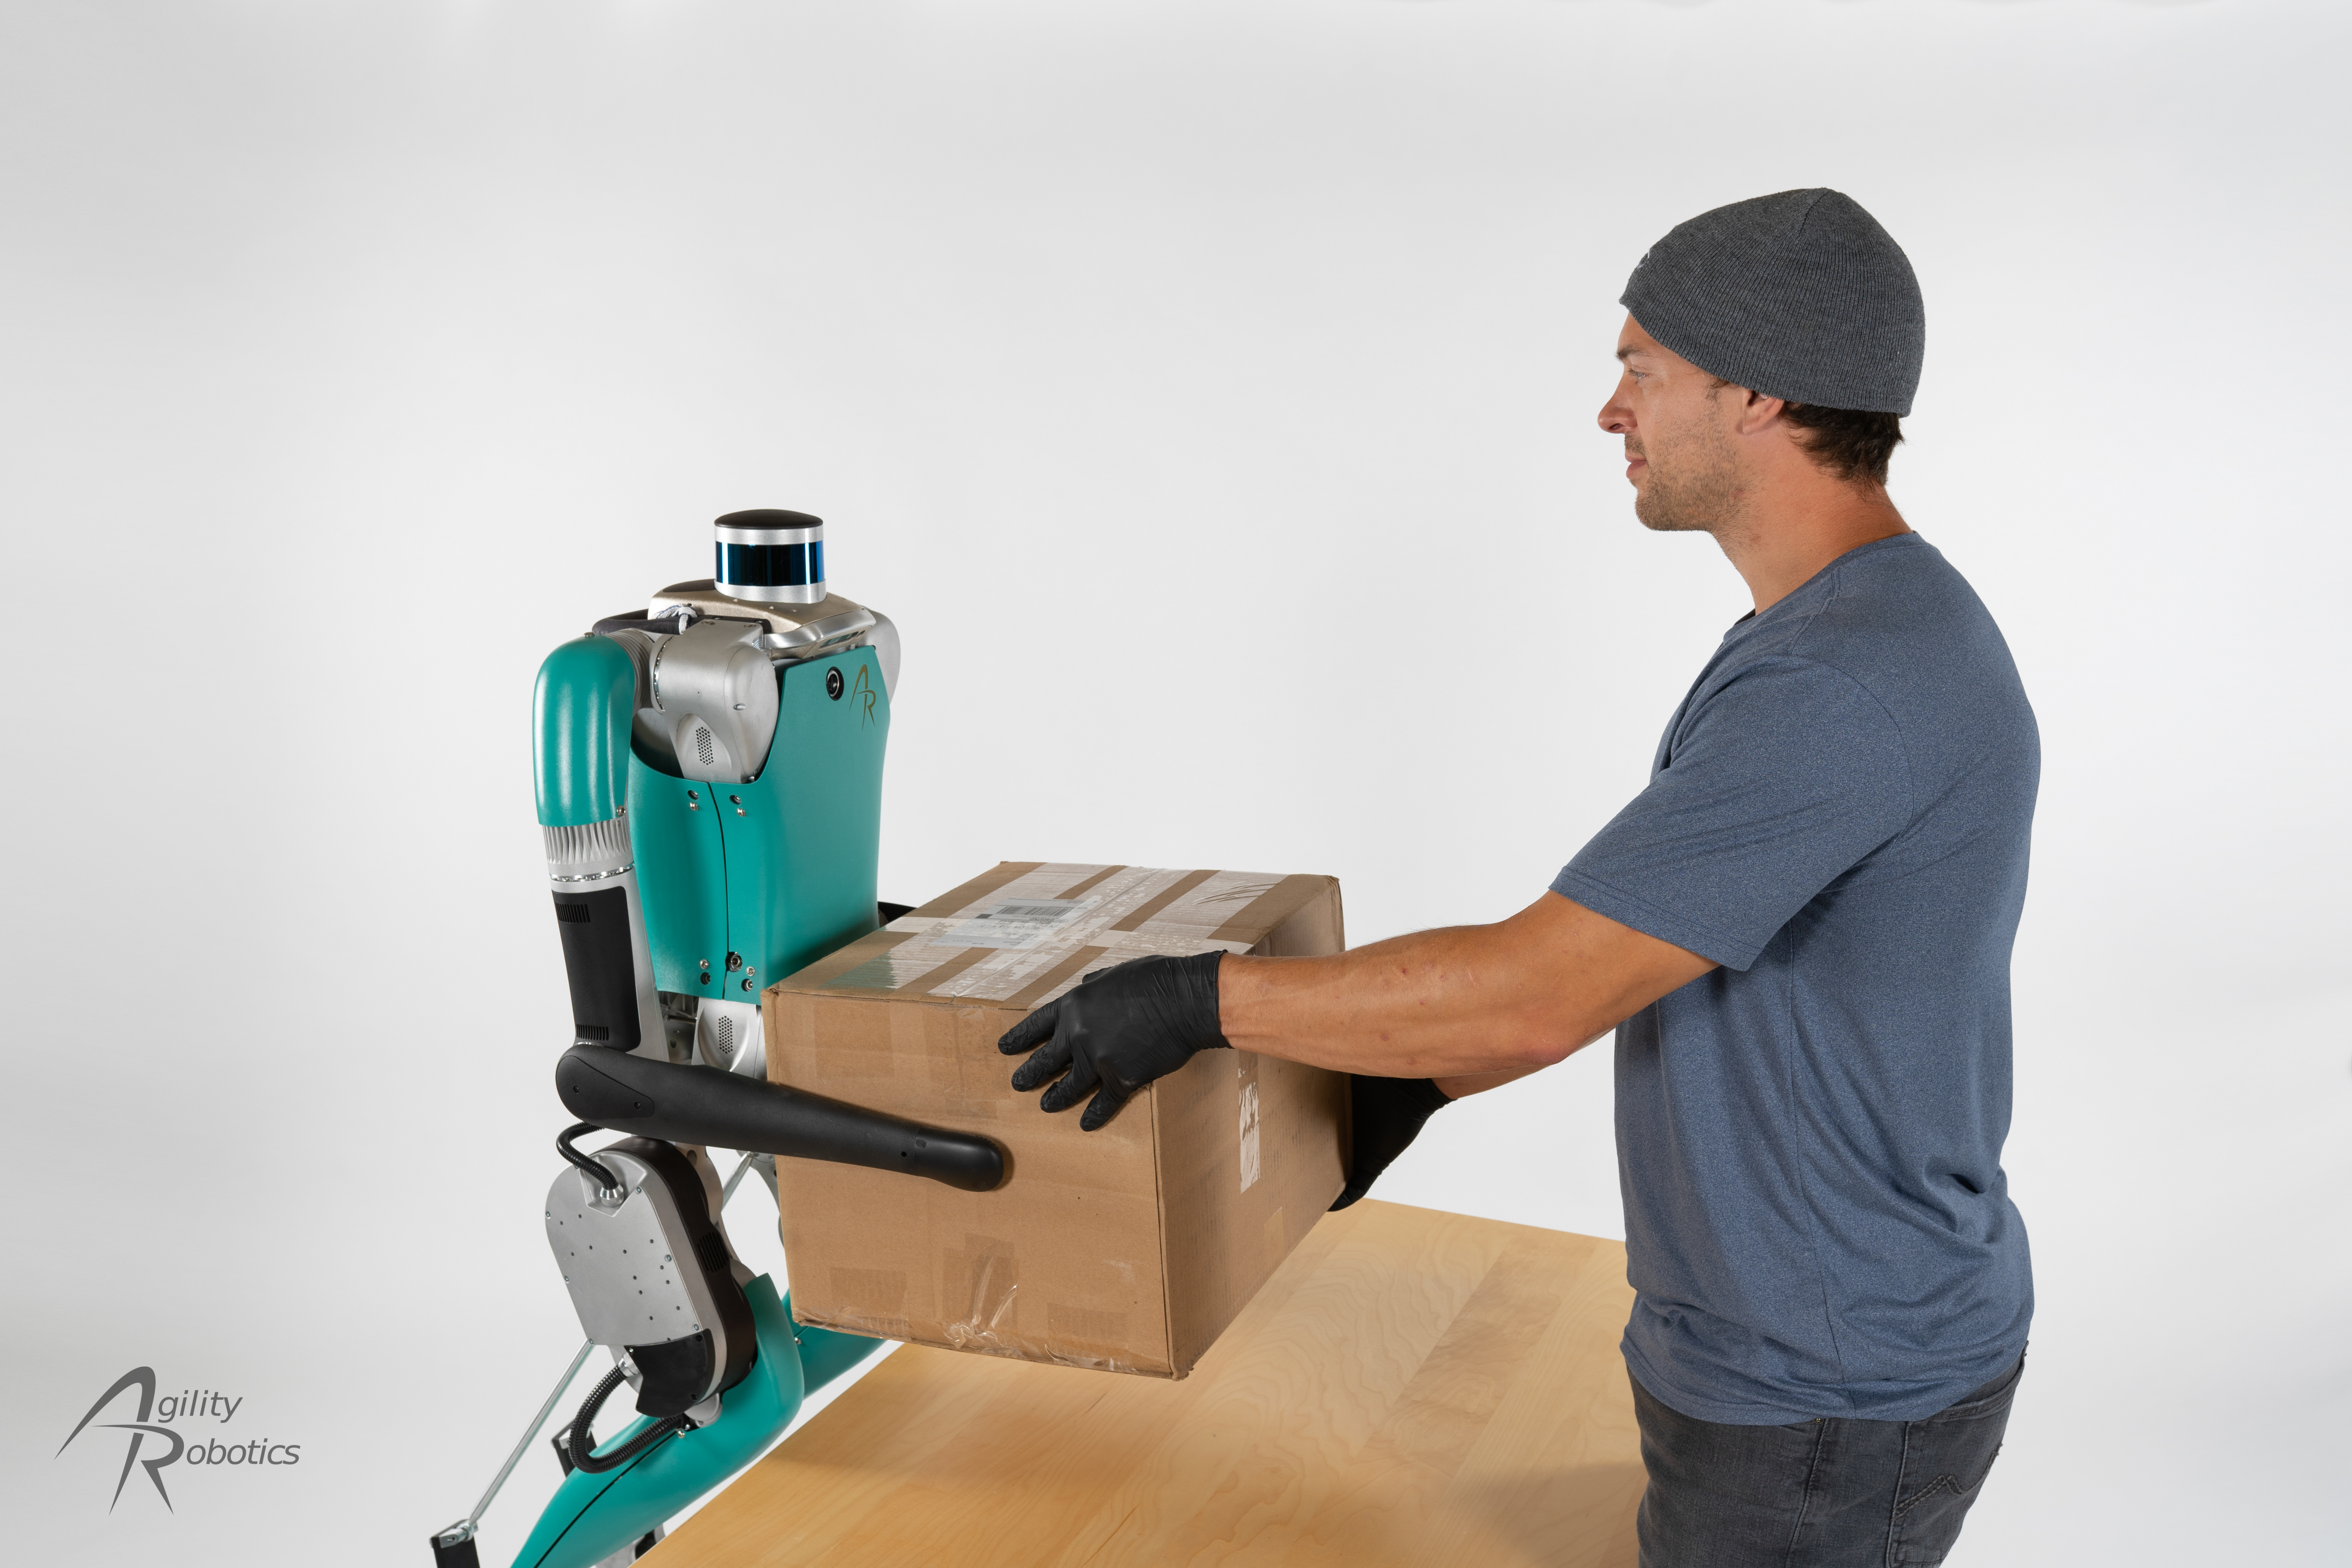 Agility Robotics Raises $20 Million